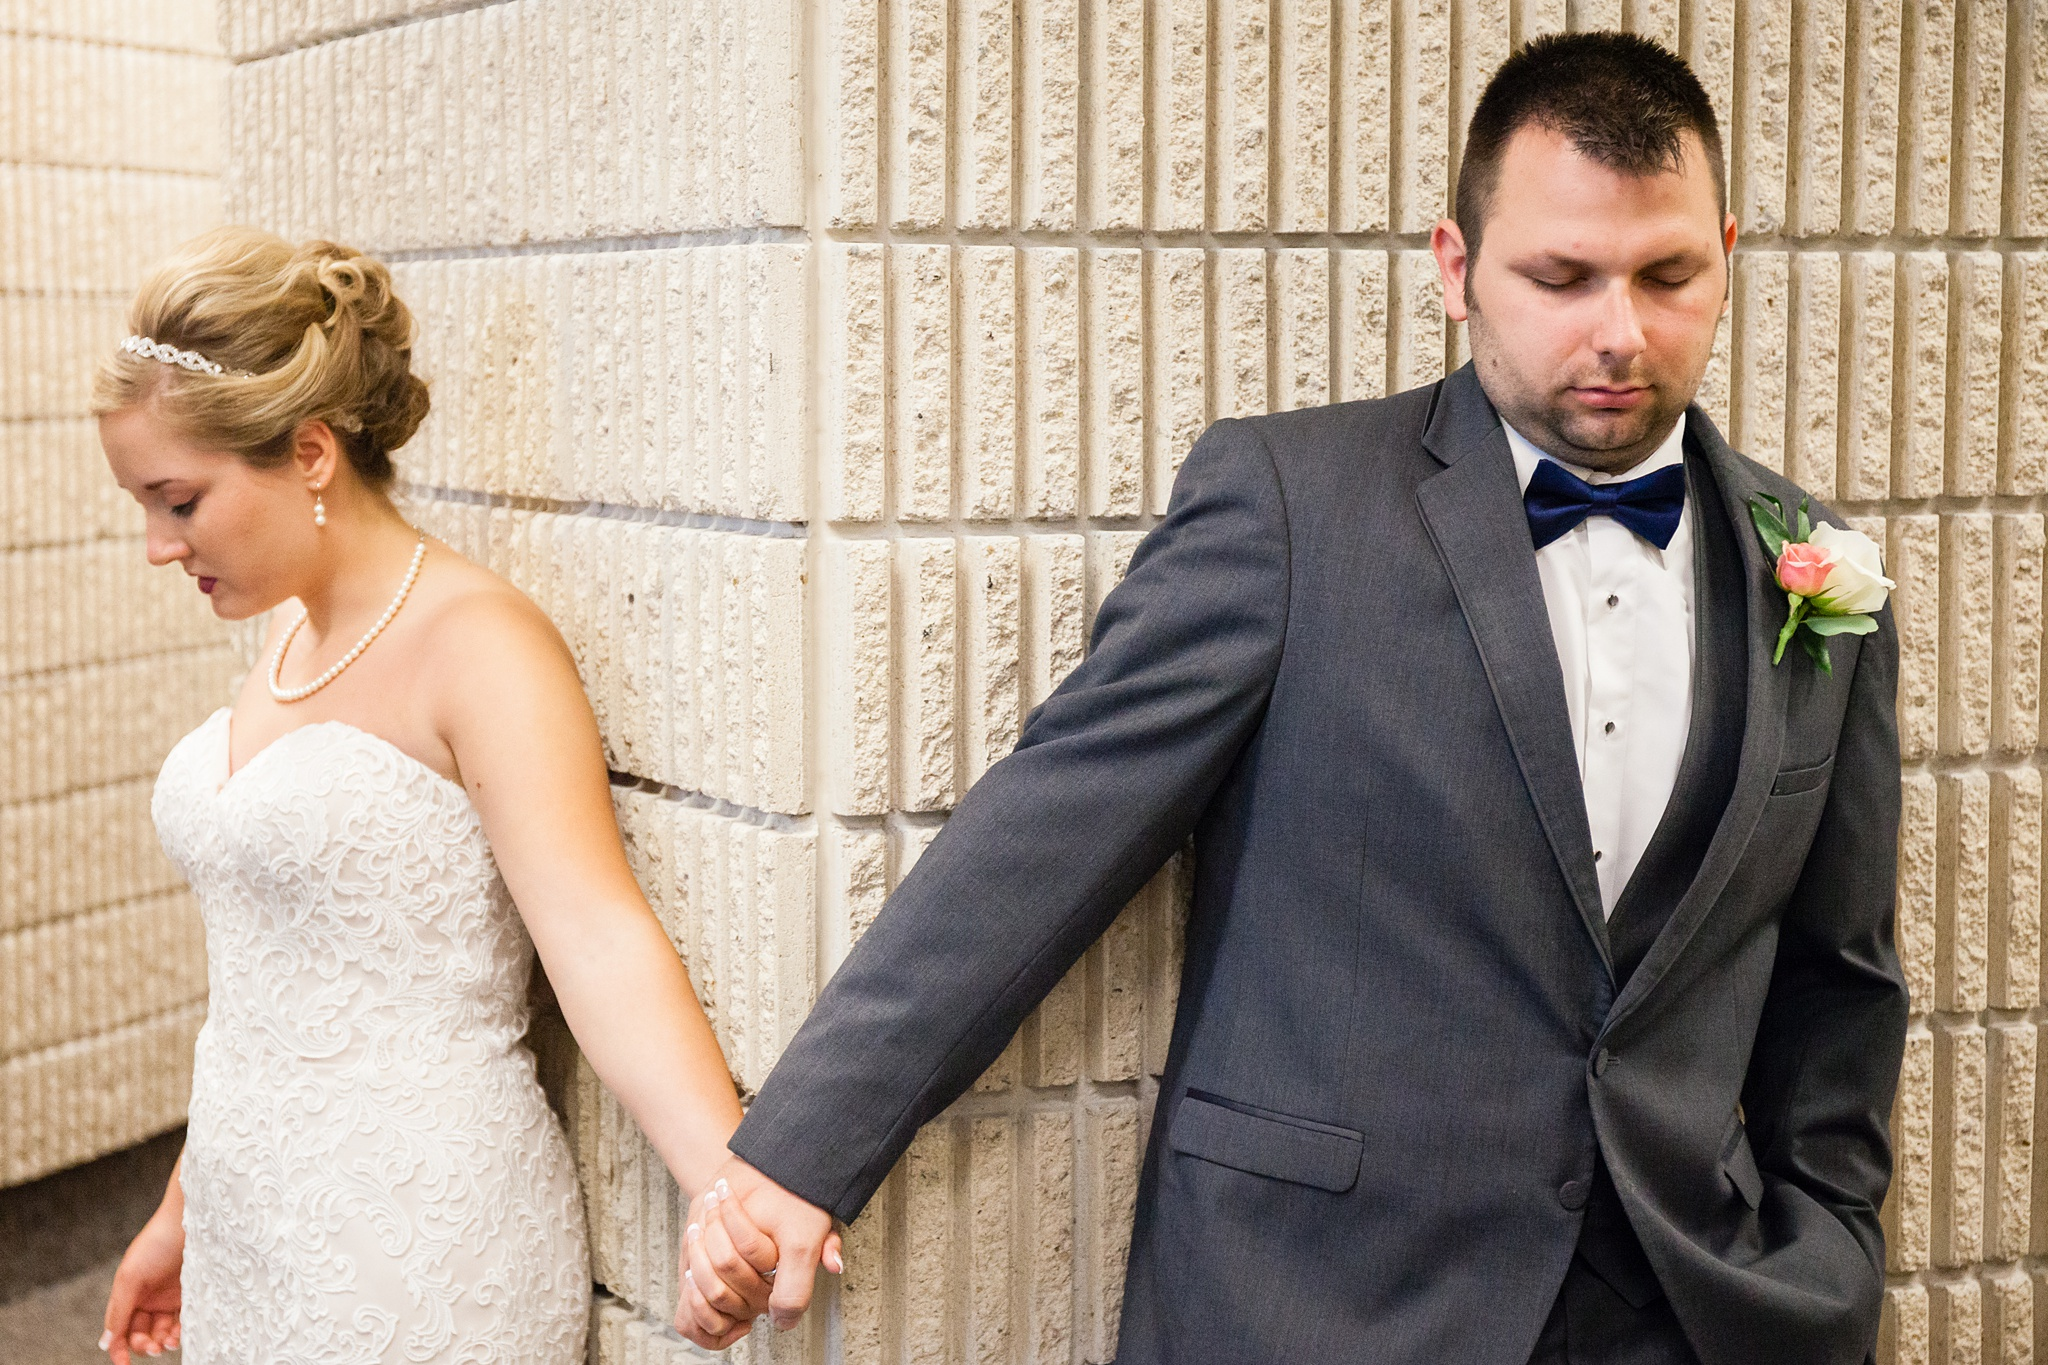 Brandon_Shafer_Photography_Grand_Rapids_Bride_Groom_0013.jpg